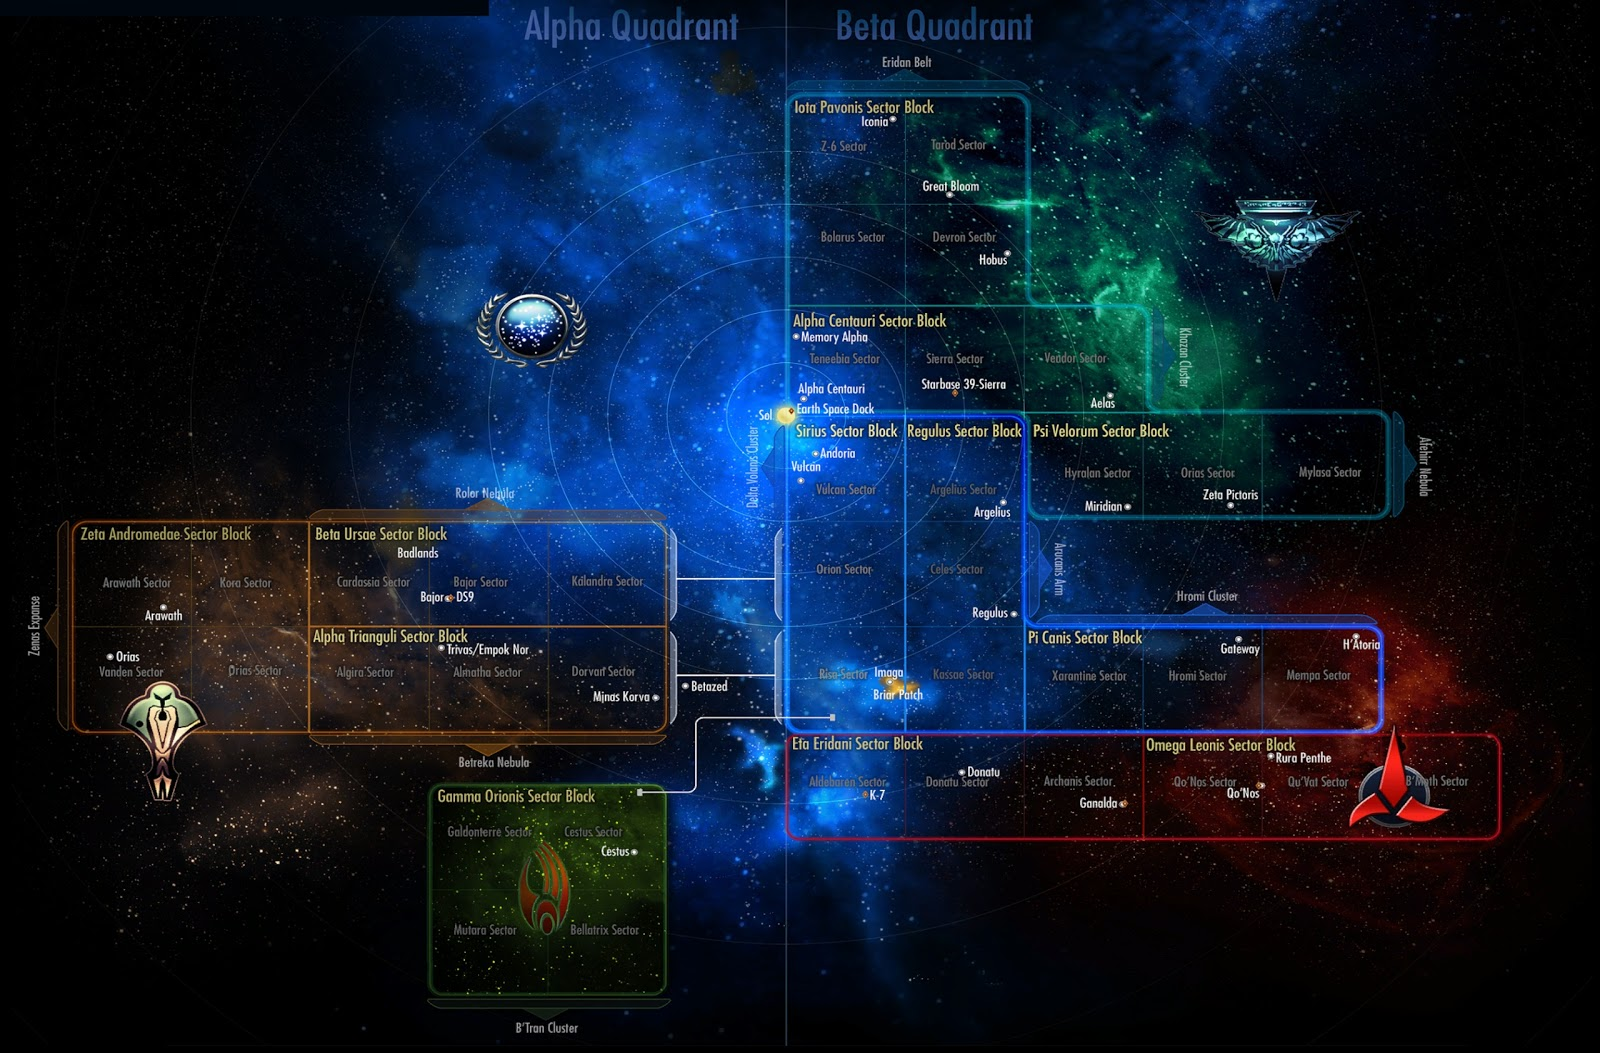 Map of the Galaxy Planets (page 2) - Pics about space